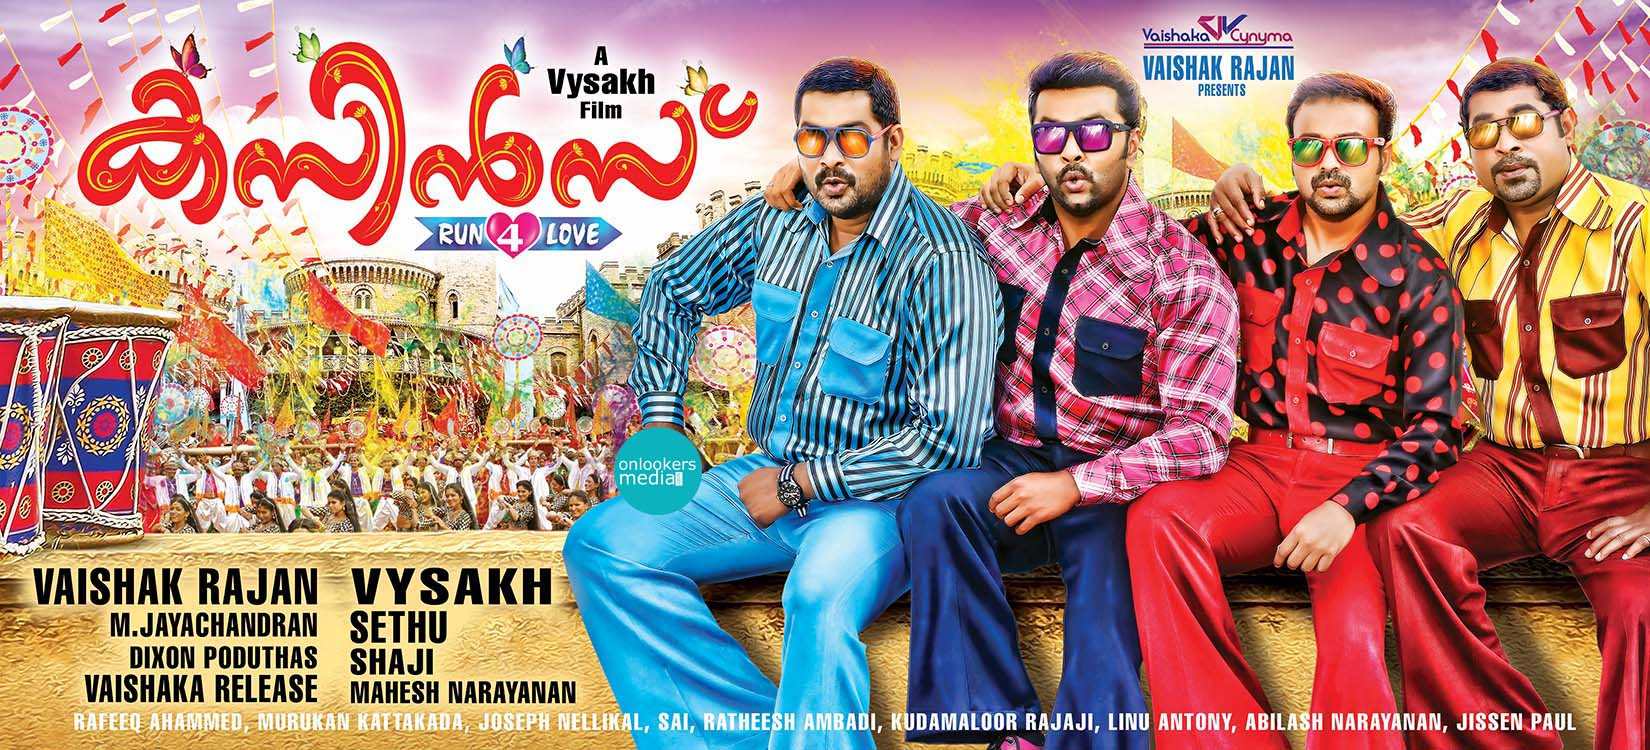 http://onlookersmedia.in/wp-content/uploads/2014/12/Cousins-Posters-Stills-Images-Review-Report-Collection-Kunchacko-Boban-Indrajith-Nisha-Agarwal-Vedhika-Miya-Onlookers-Media-7.jpg